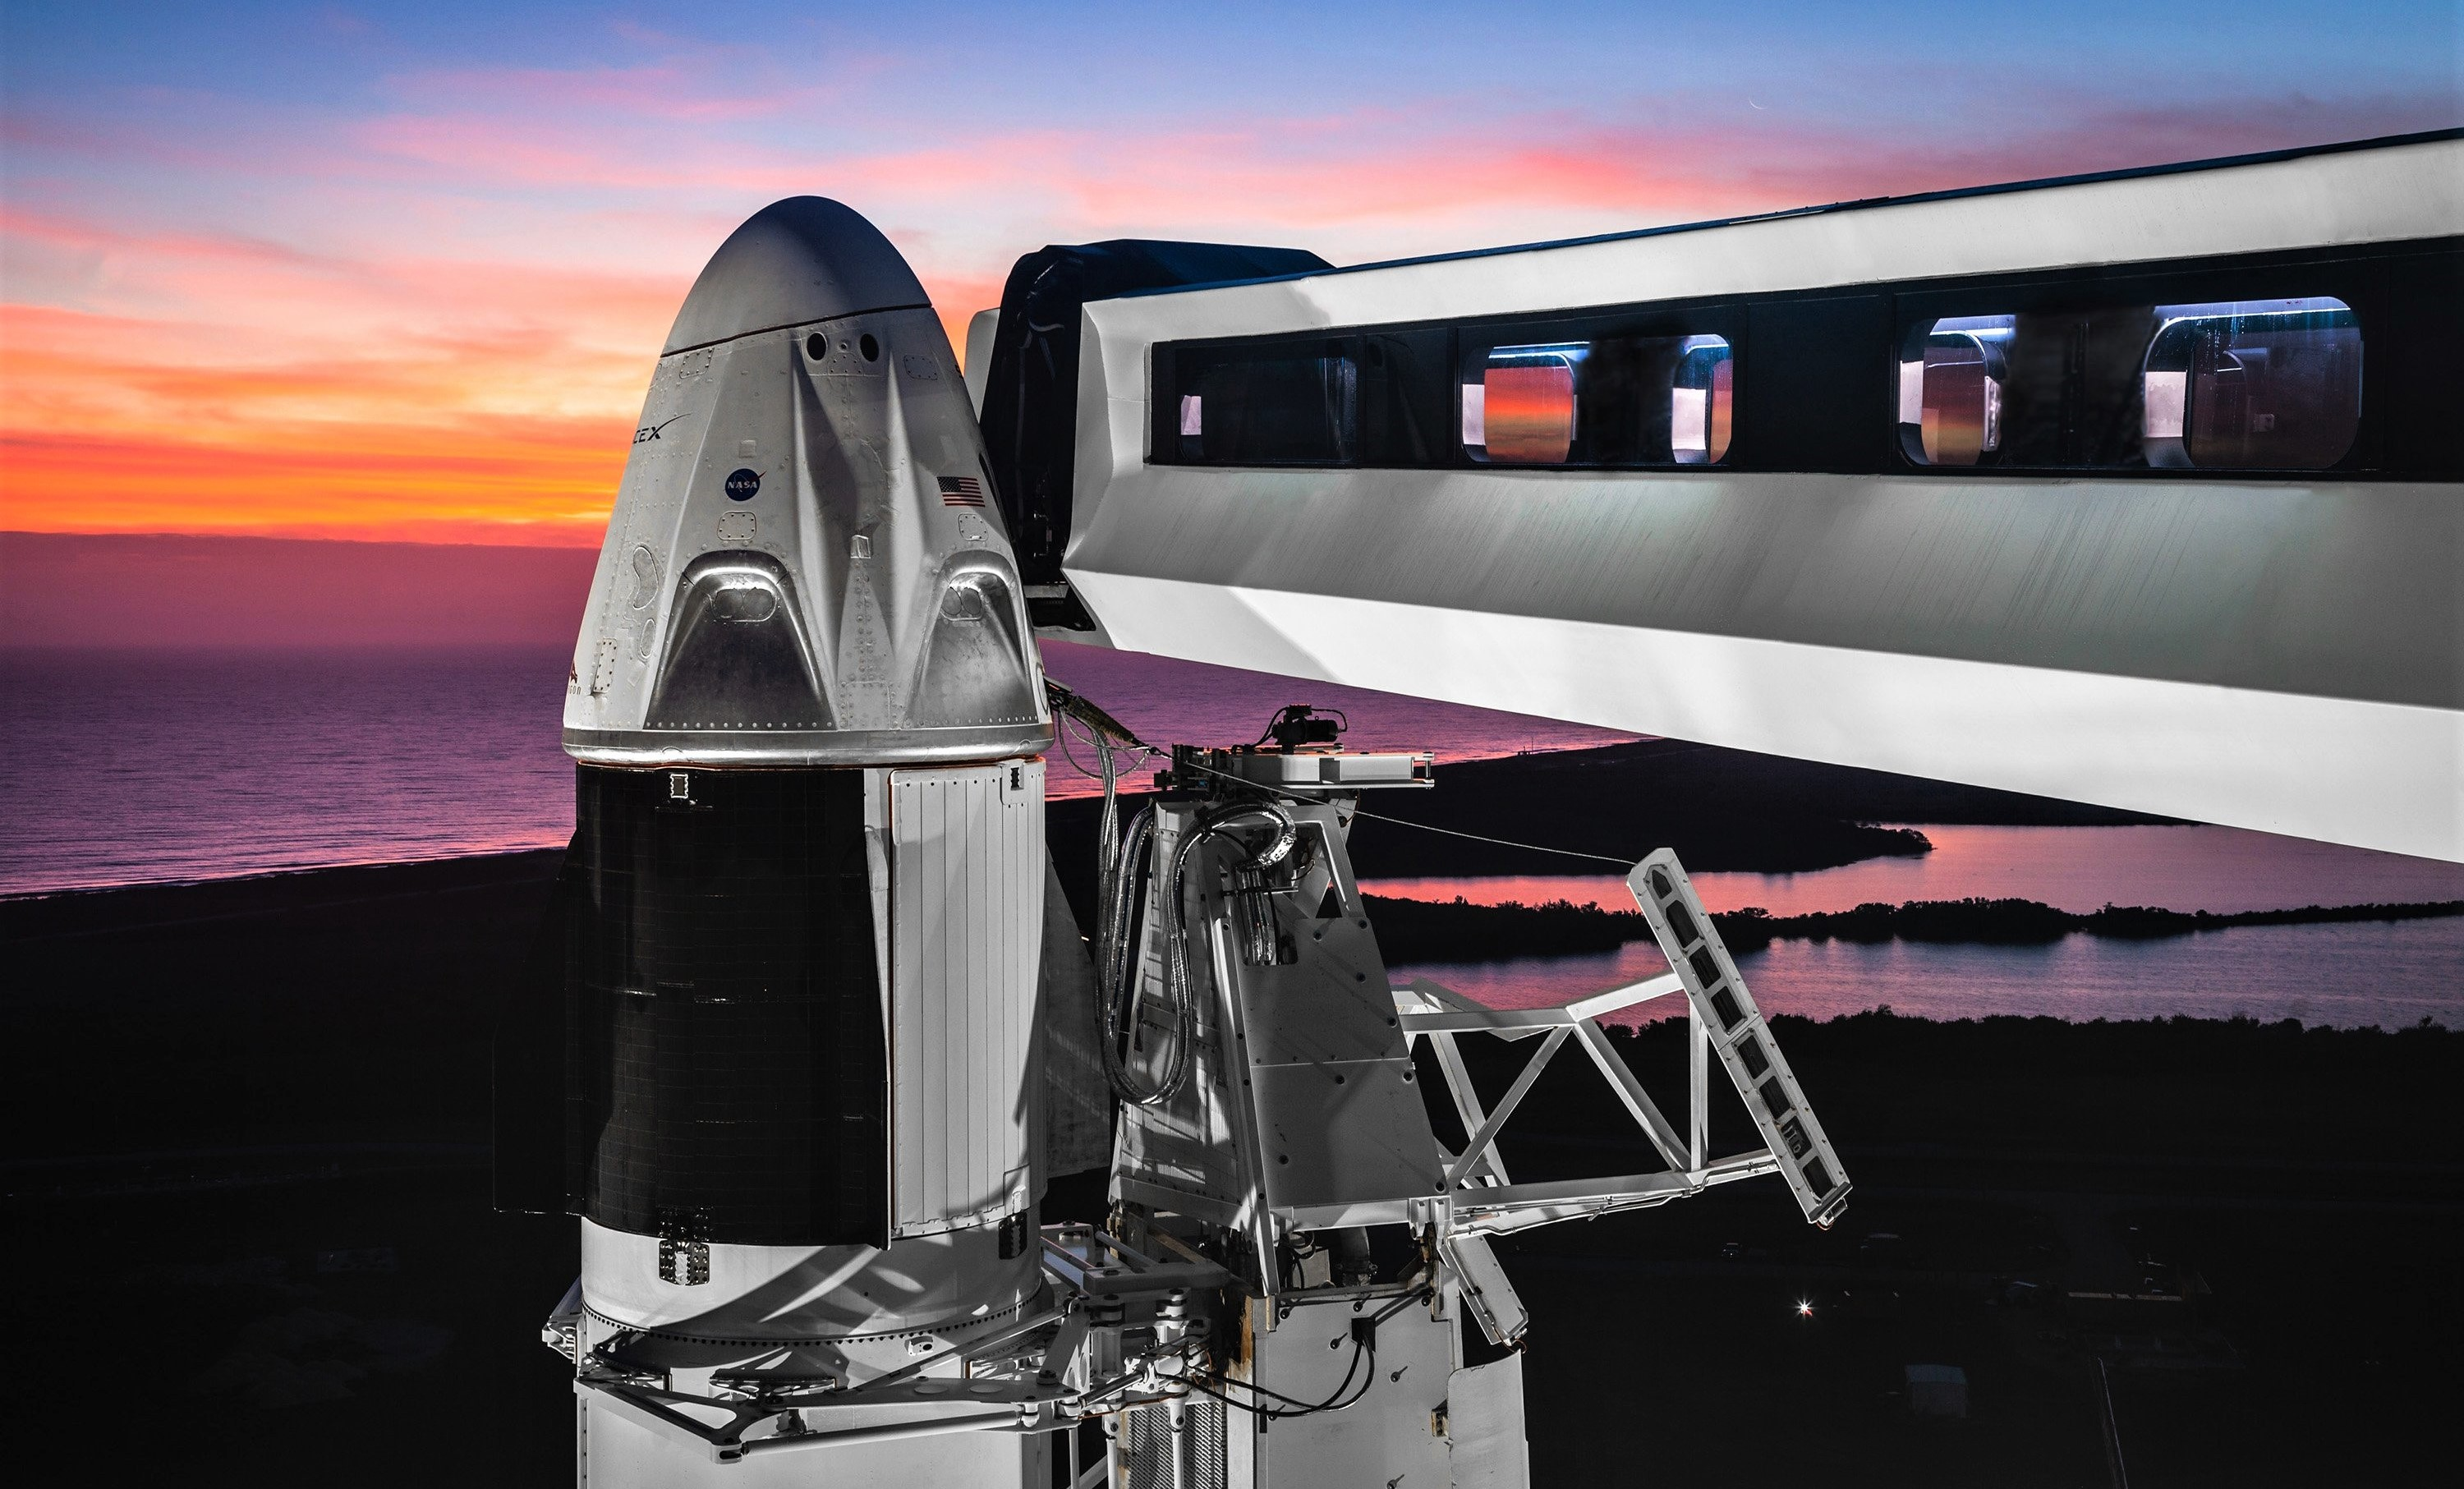 Crew Dragon DM-1 Falcon 9 B1051 Jan 2019 sunset (SpaceX) 1 crop